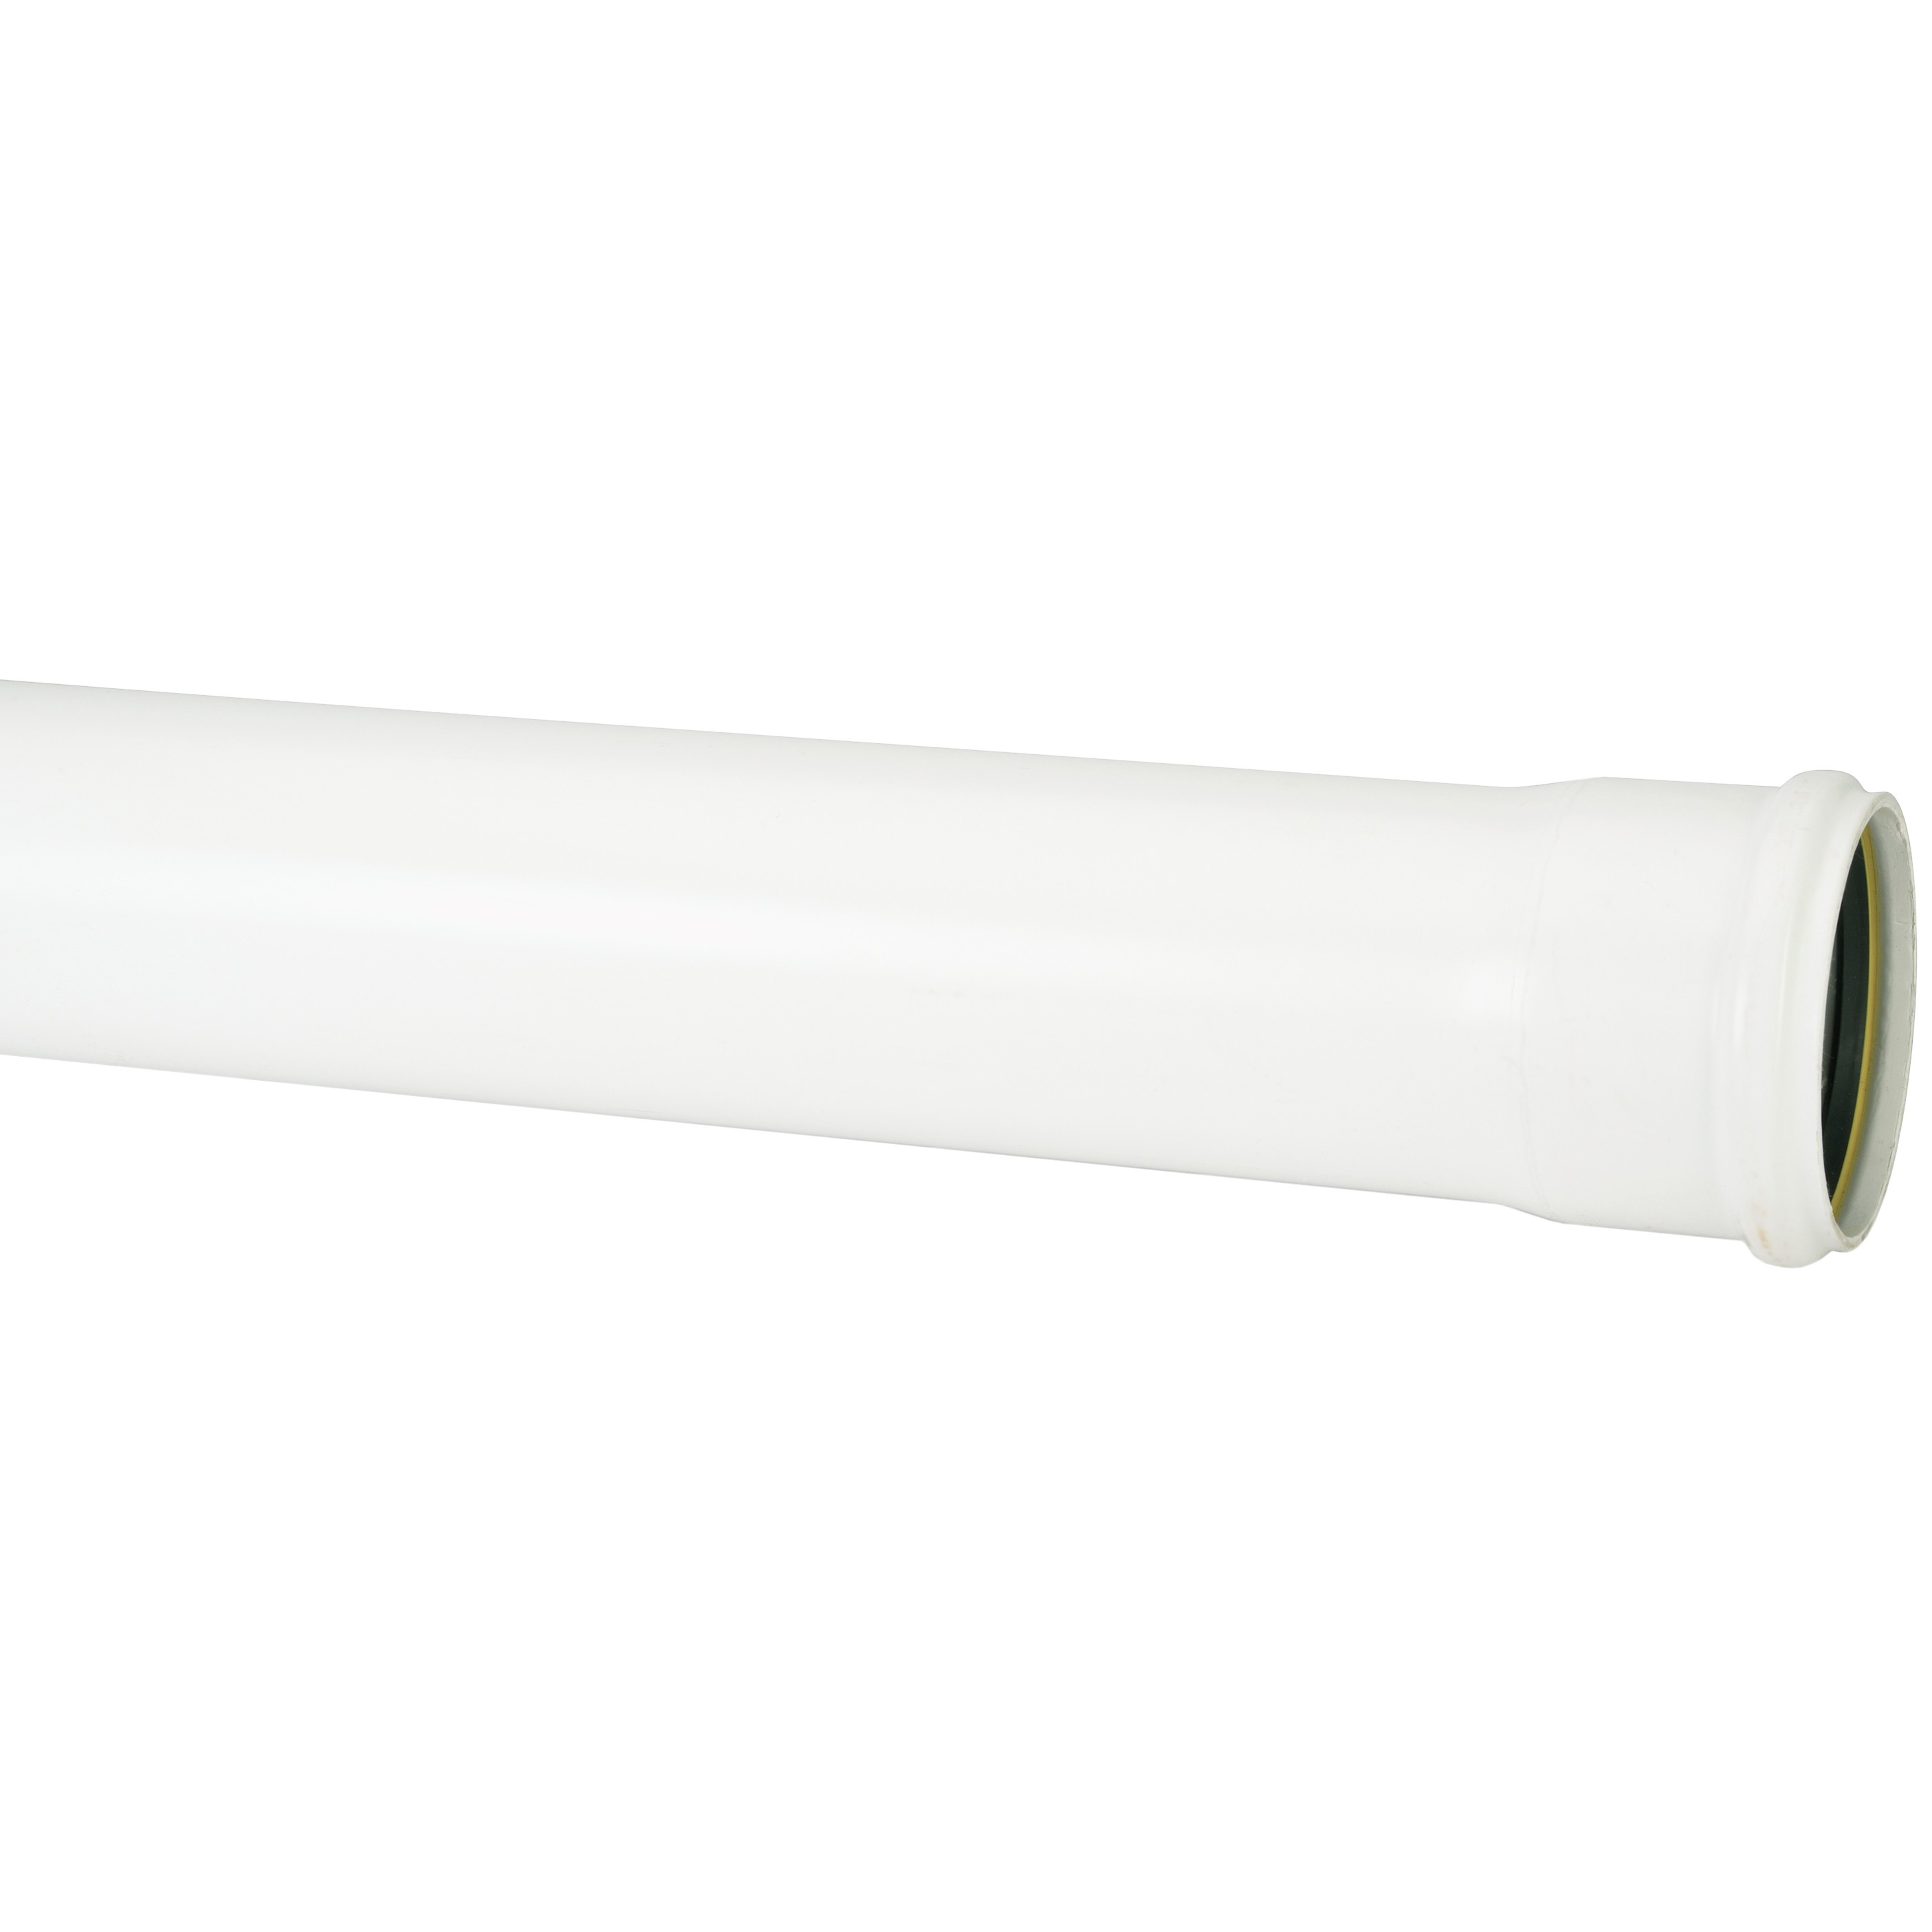 Polypipe 110mm Soil Single Socket Pipe - White, 4 metre